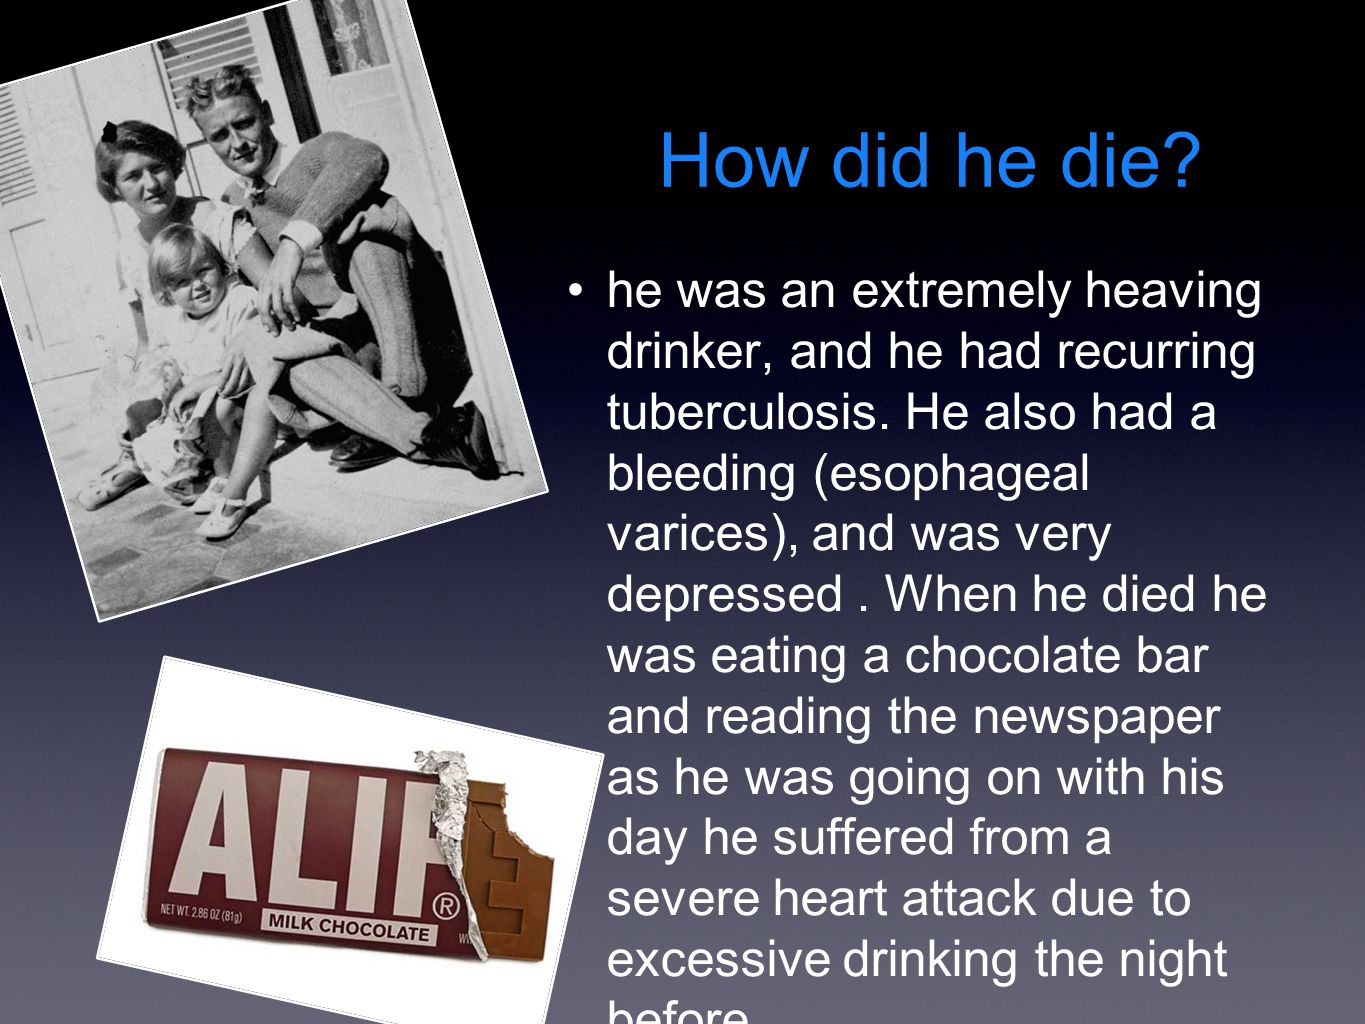 How did he die. he was an extremely heaving drinker, and he had recurring tuberculosis.